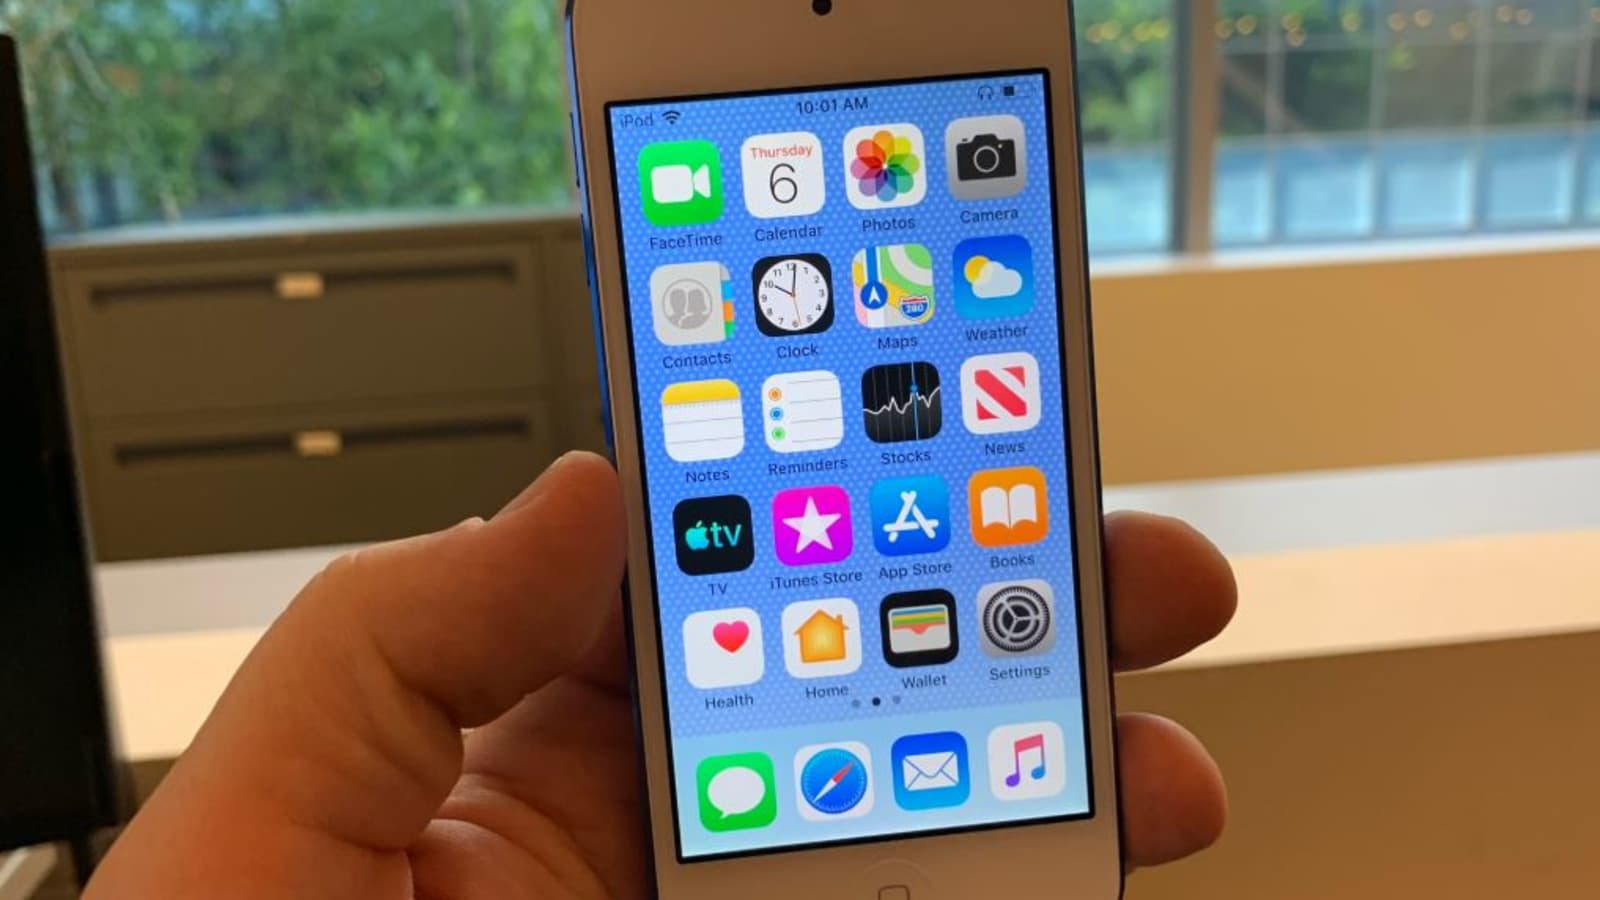 IPod touch review: Believe it or not